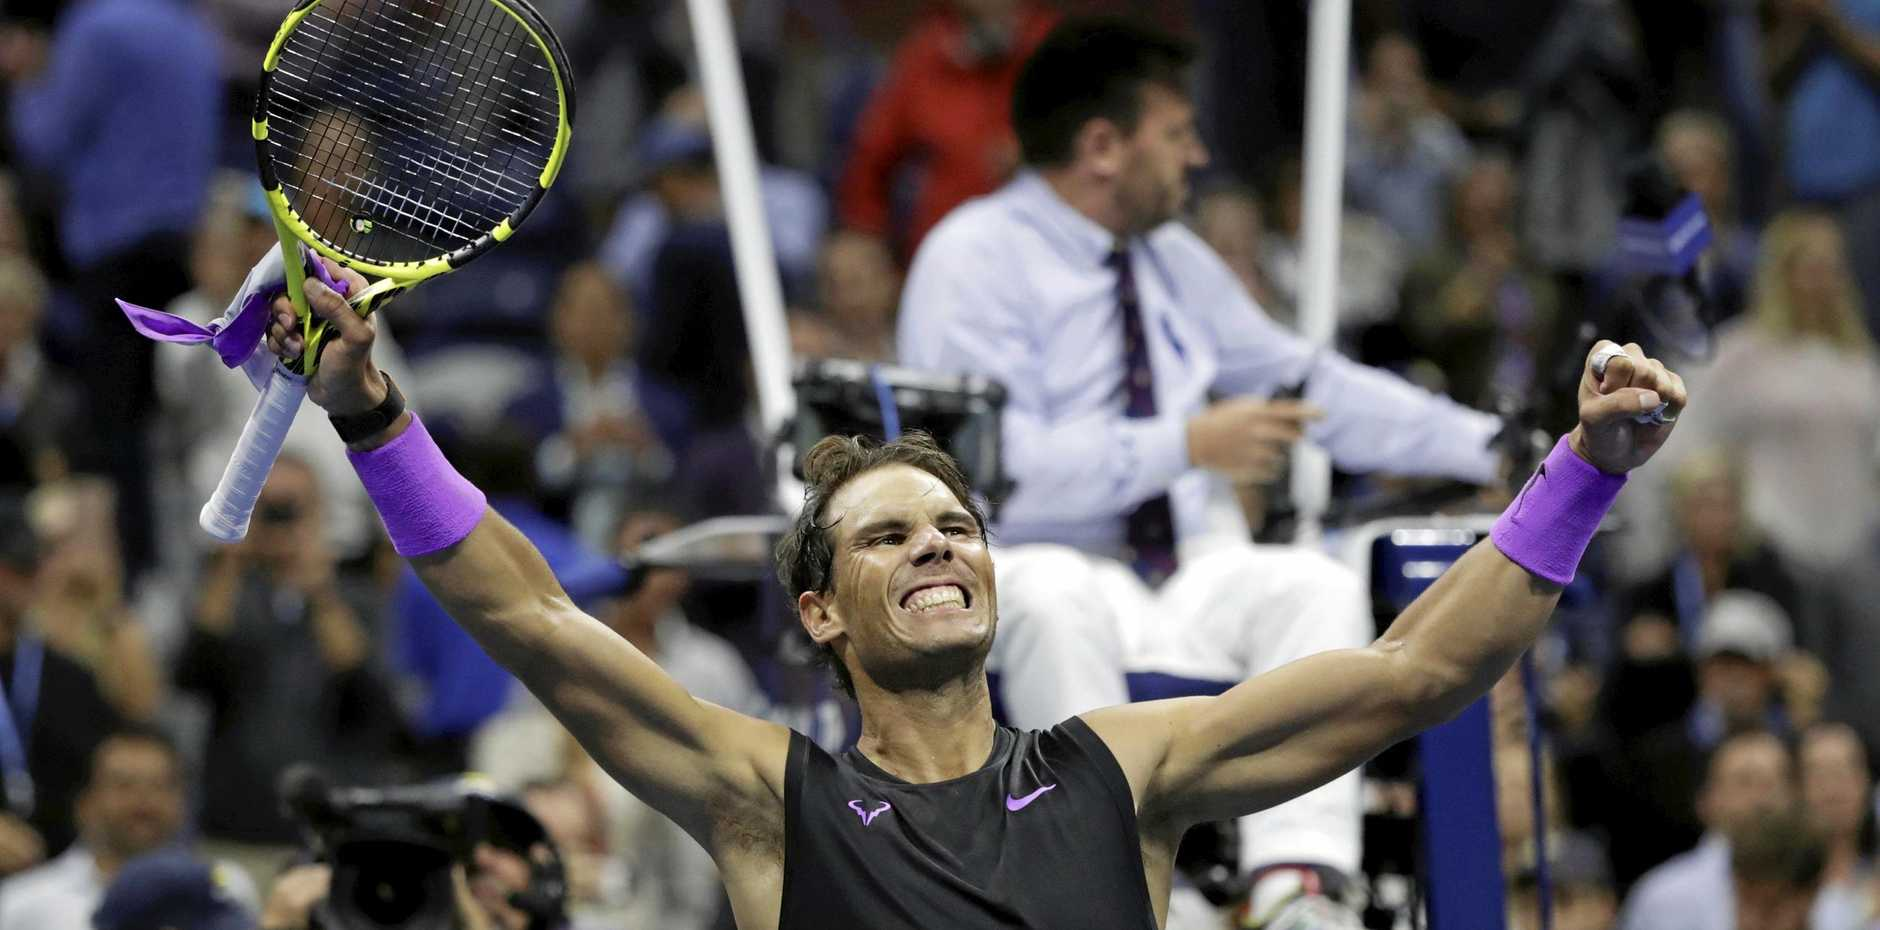 Spain's Rafael Nadal shows his joy after beating Italy's Matteo Berrettini in their US Open semi-final. Picture: Adam Hunger/AP